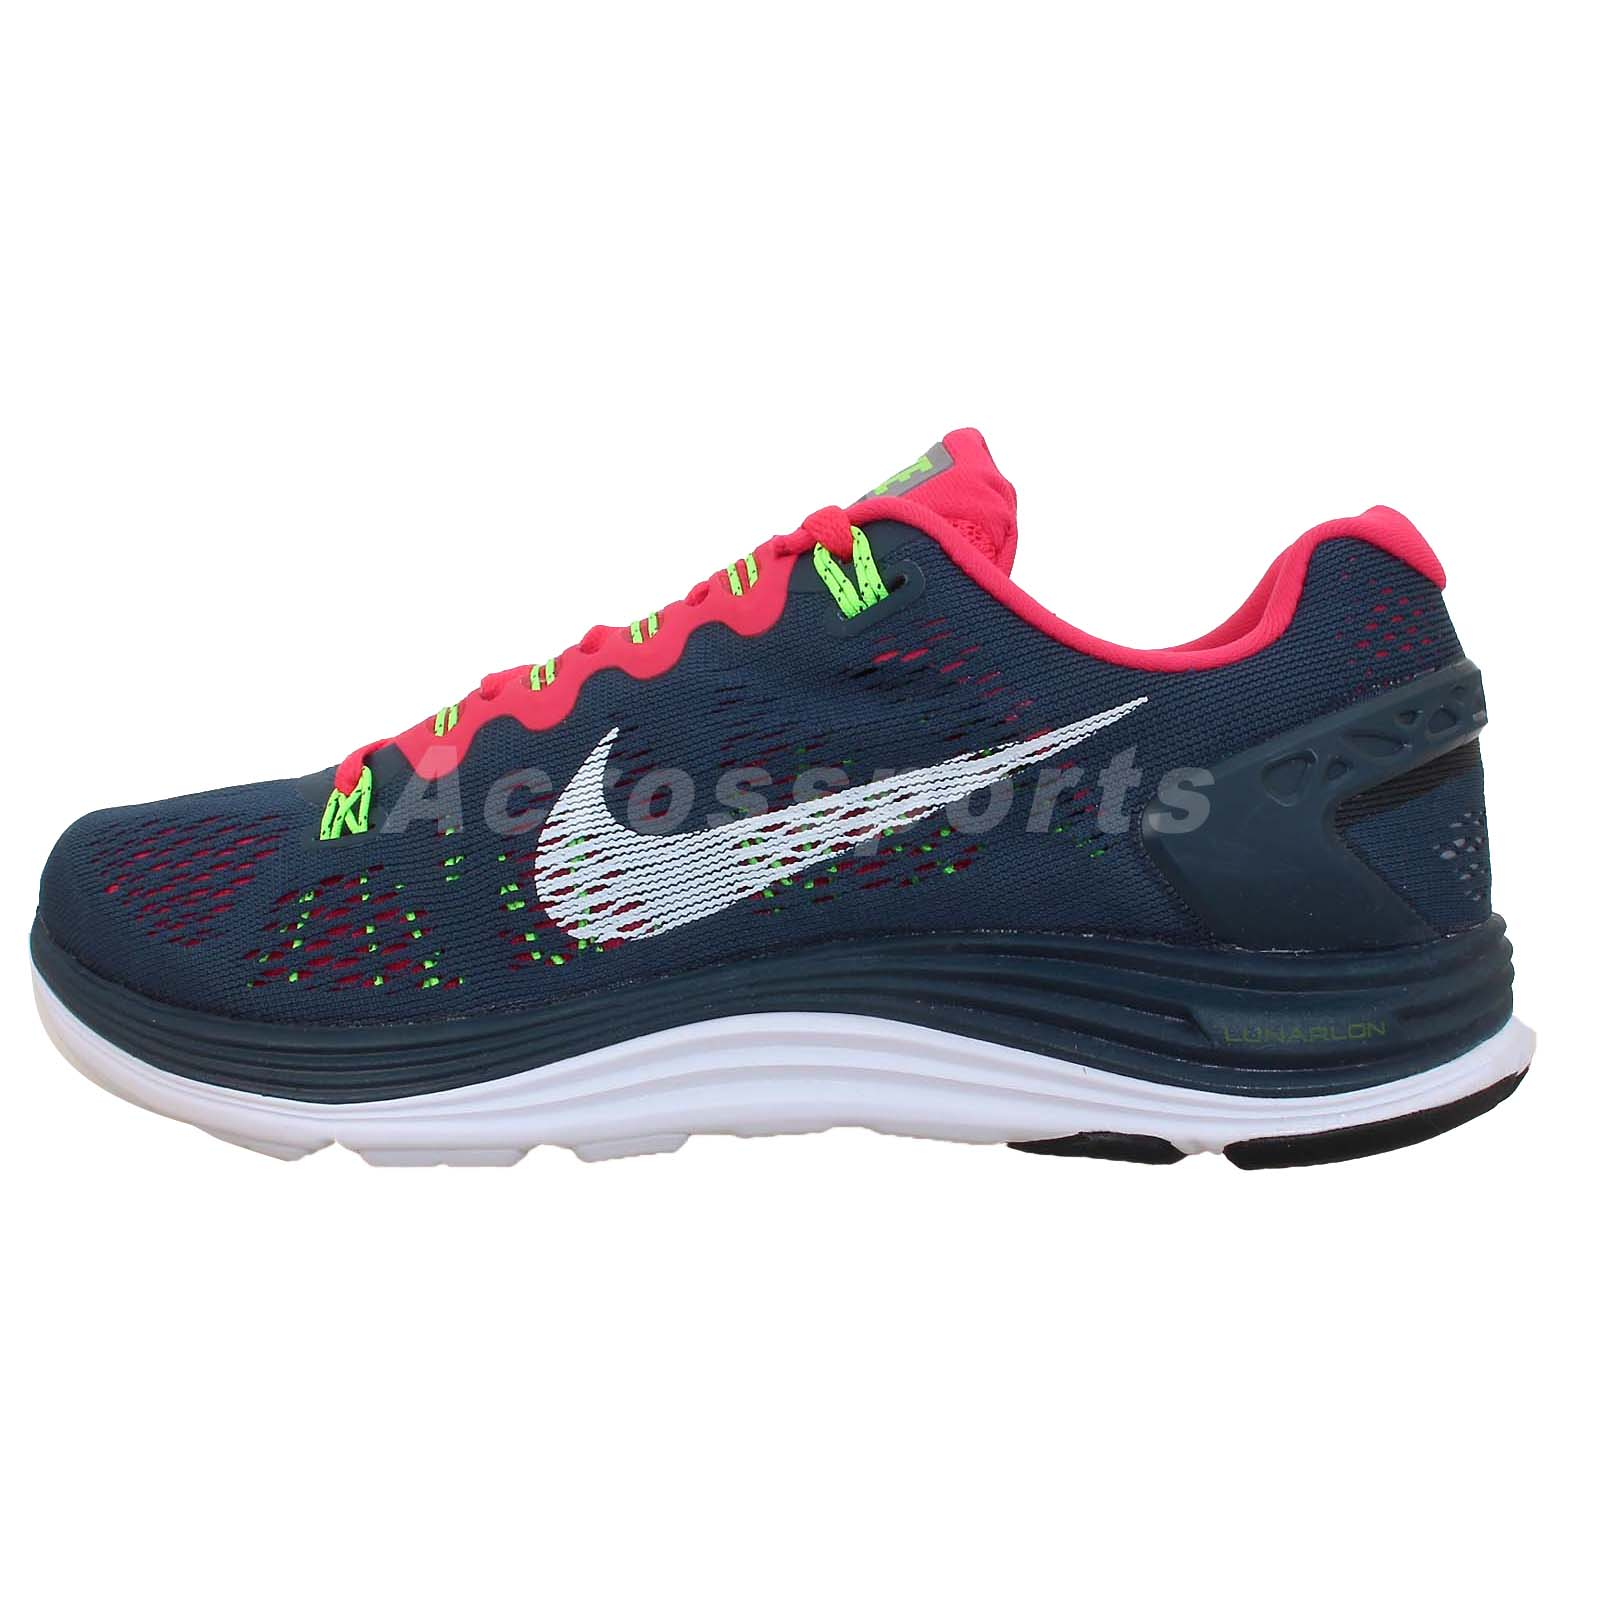 Excellent The Nike Lunar Tempo 2 Running Shoes Are Ideal For Tempo Training Or Longer